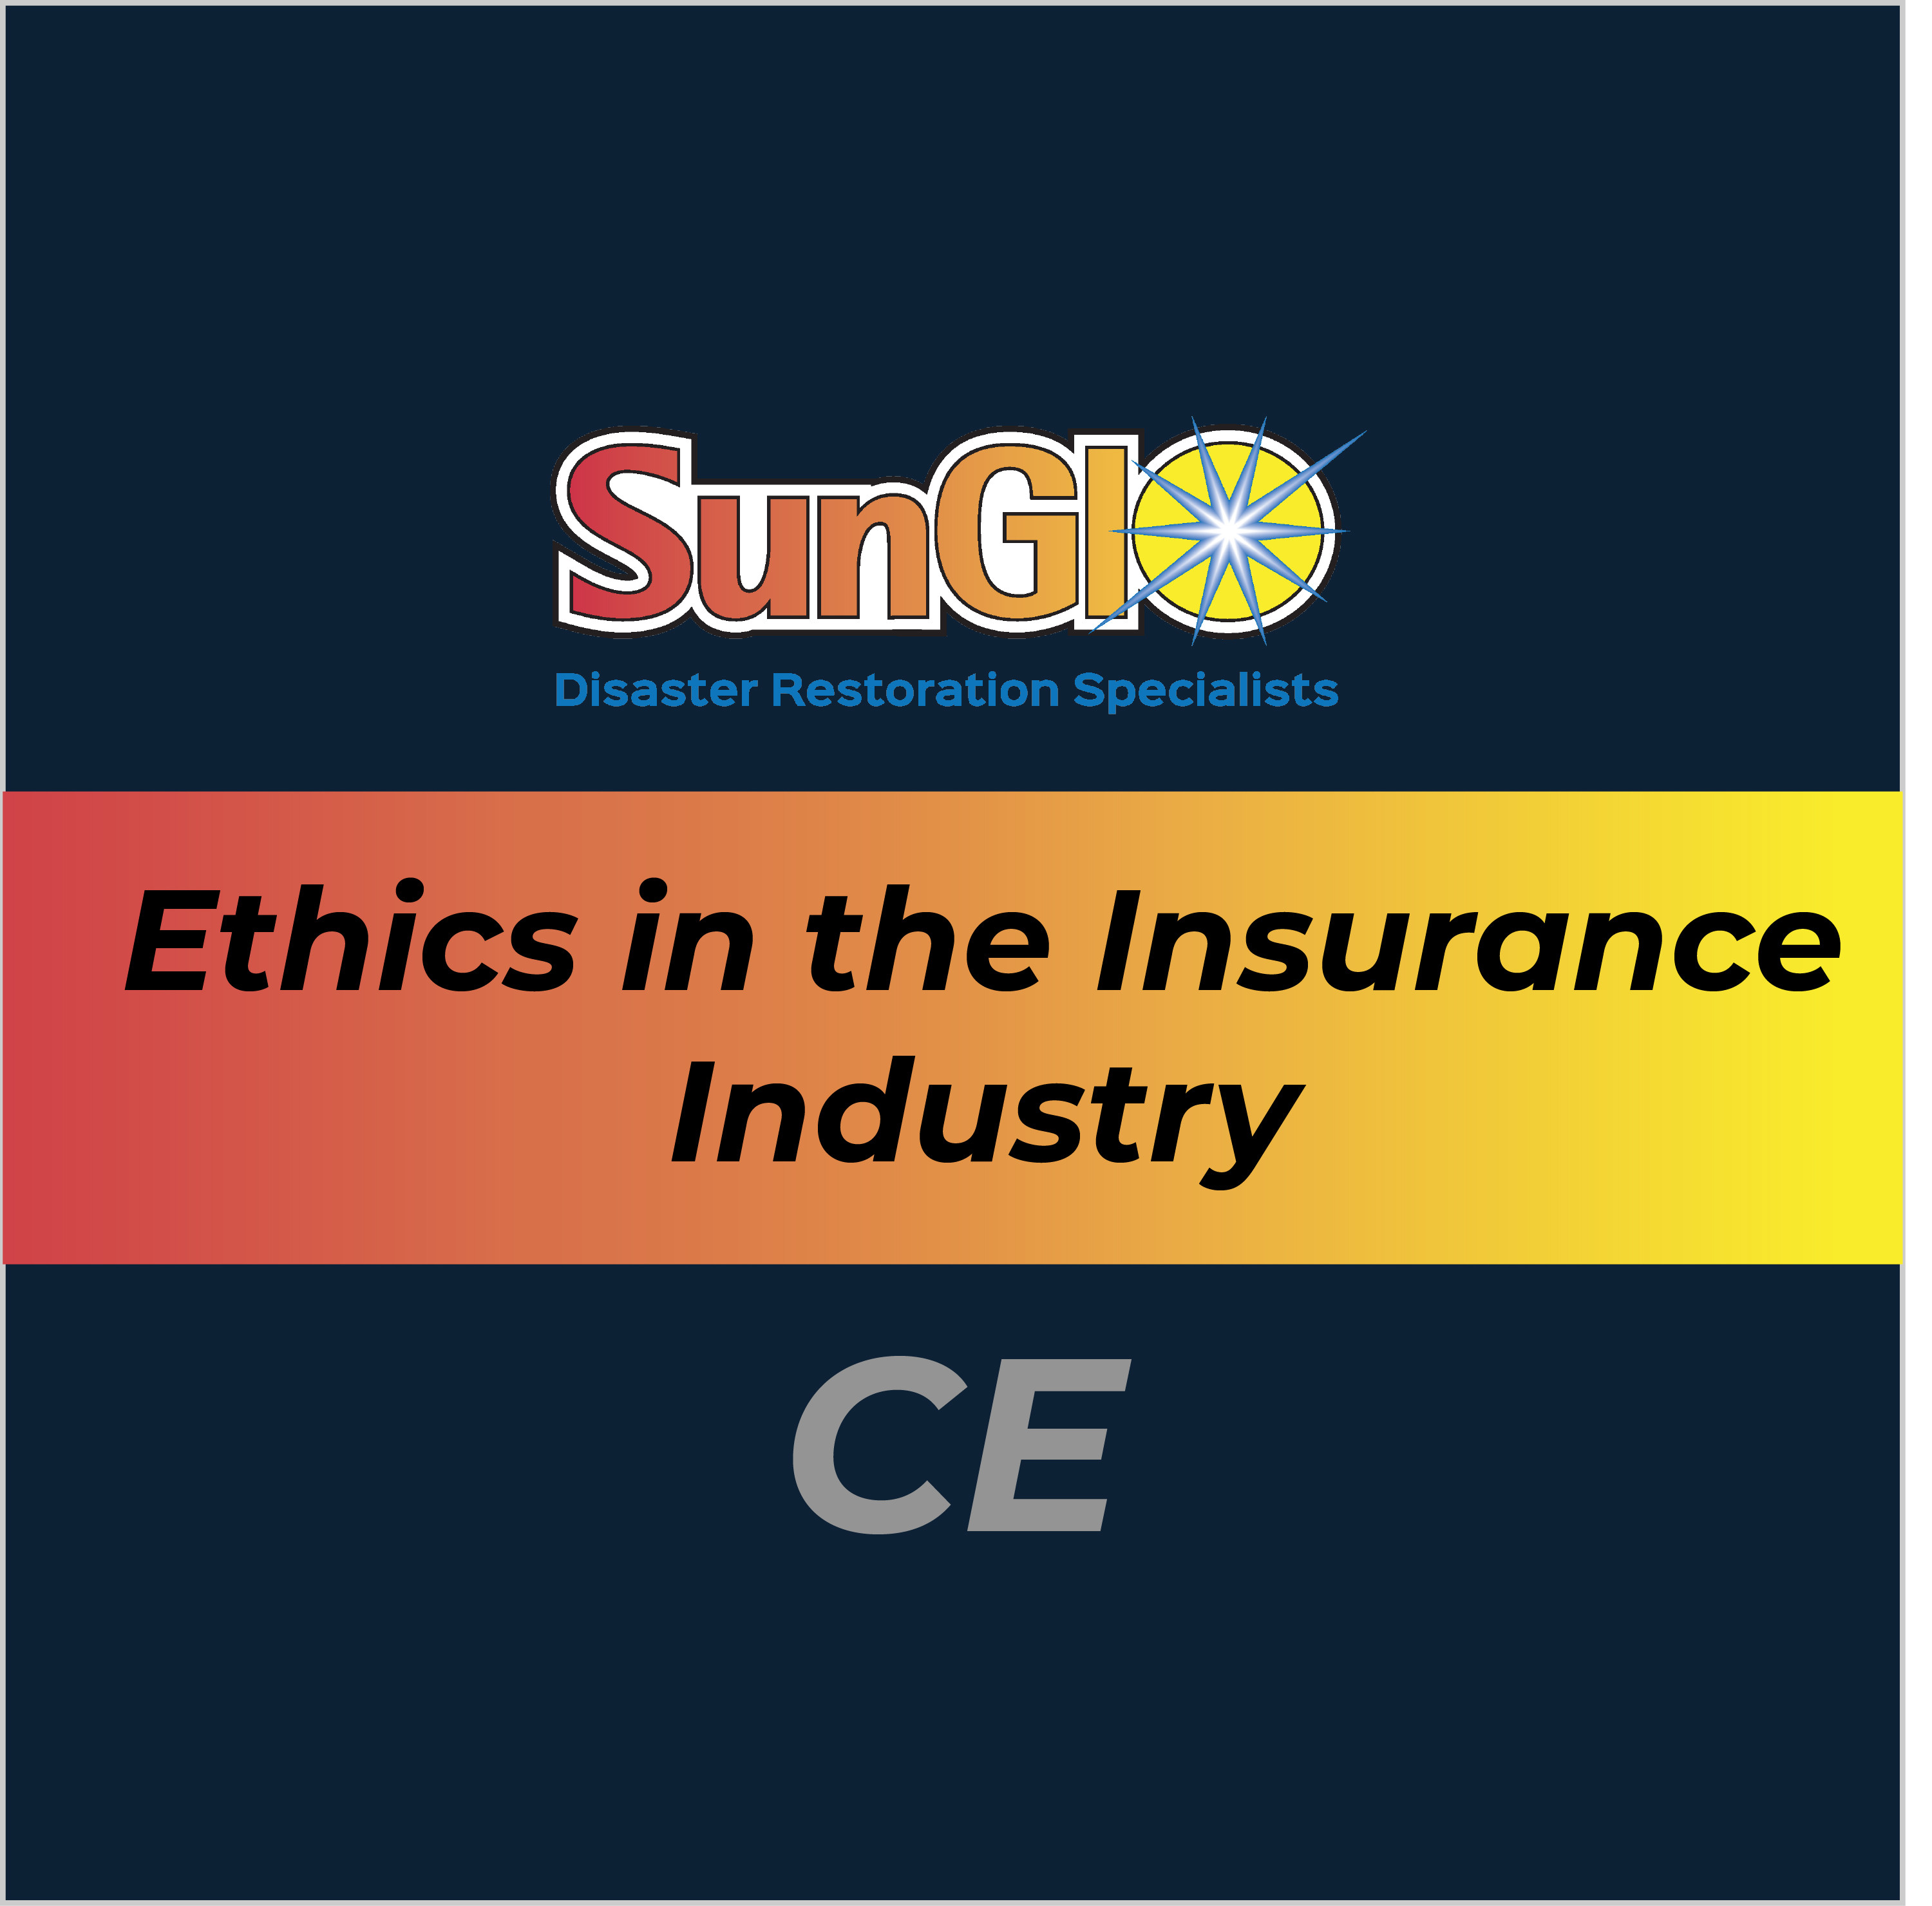 Ethics in the Insurance Industry